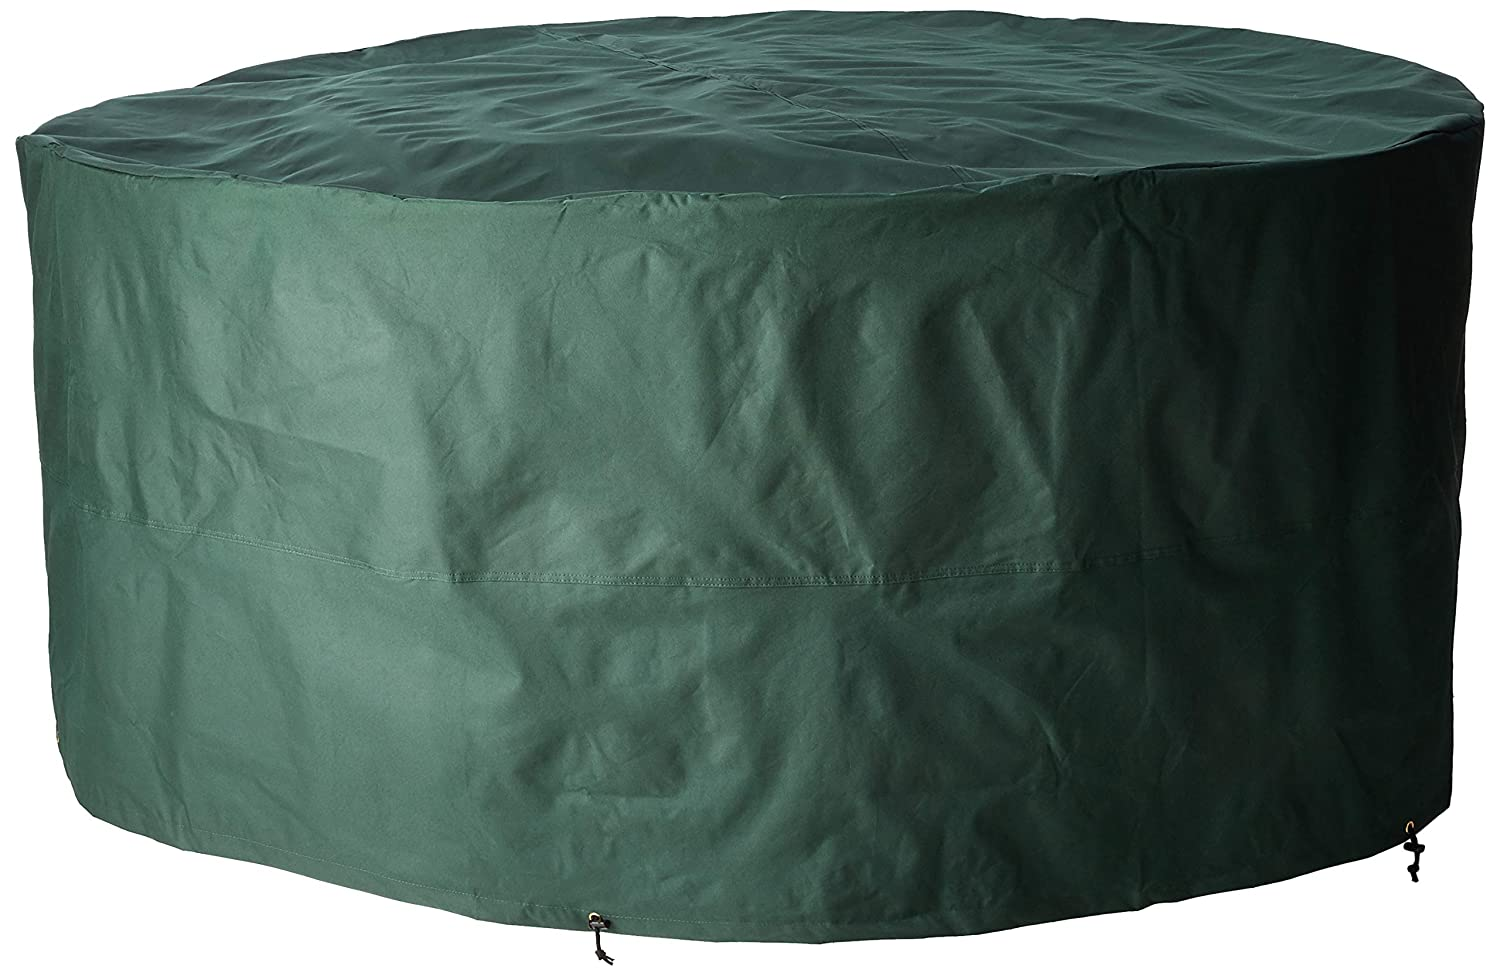 Bosmere C521 84 Inch Round Table and Chairs Polyethylene Cover B003V4B060